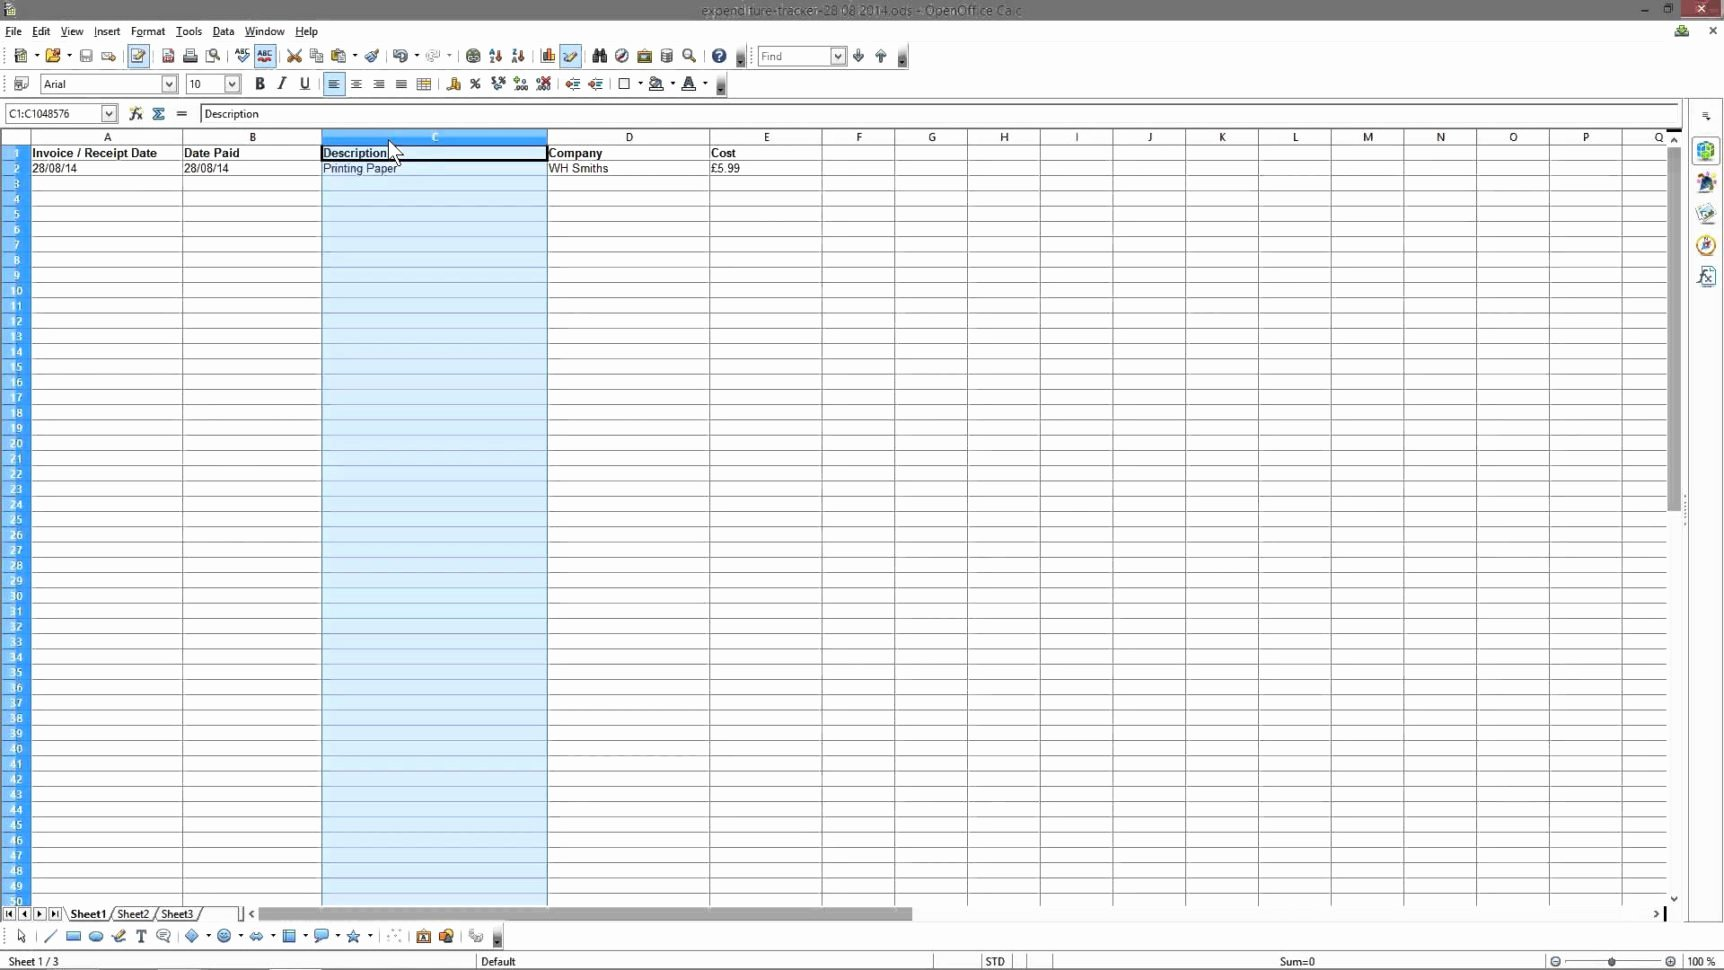 Monthly Expense Spreadsheet Template Inspirational Free Business Expense Spreadsheet Templates Business